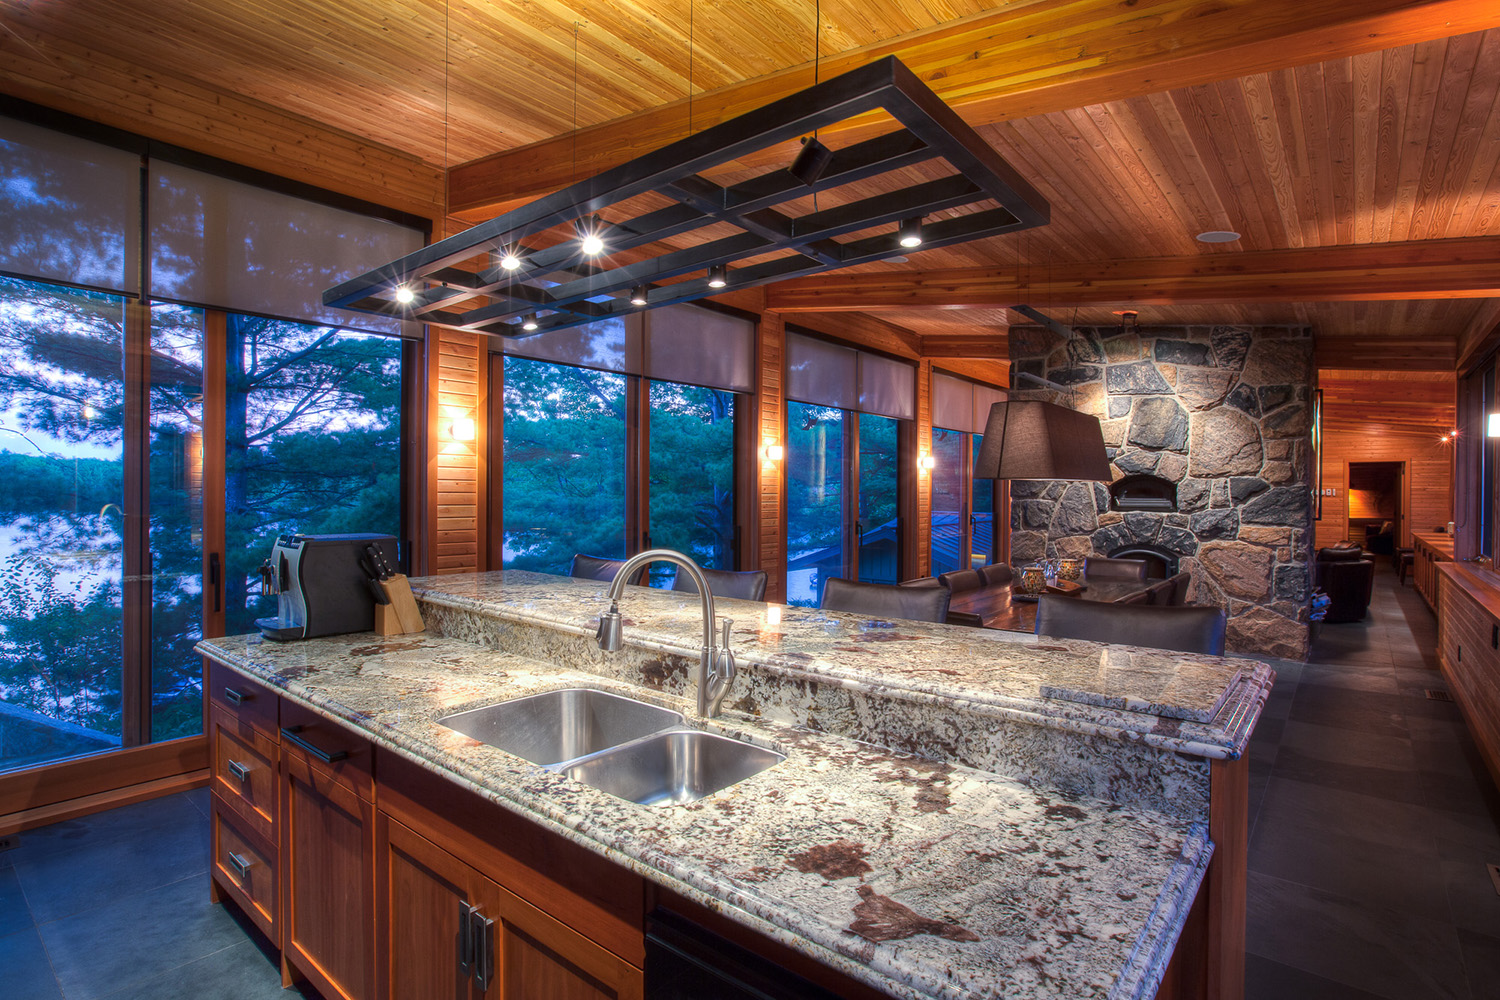 Cottage kitchen with monumental stone fireplace, granite countertops and engineered wood exposed structure